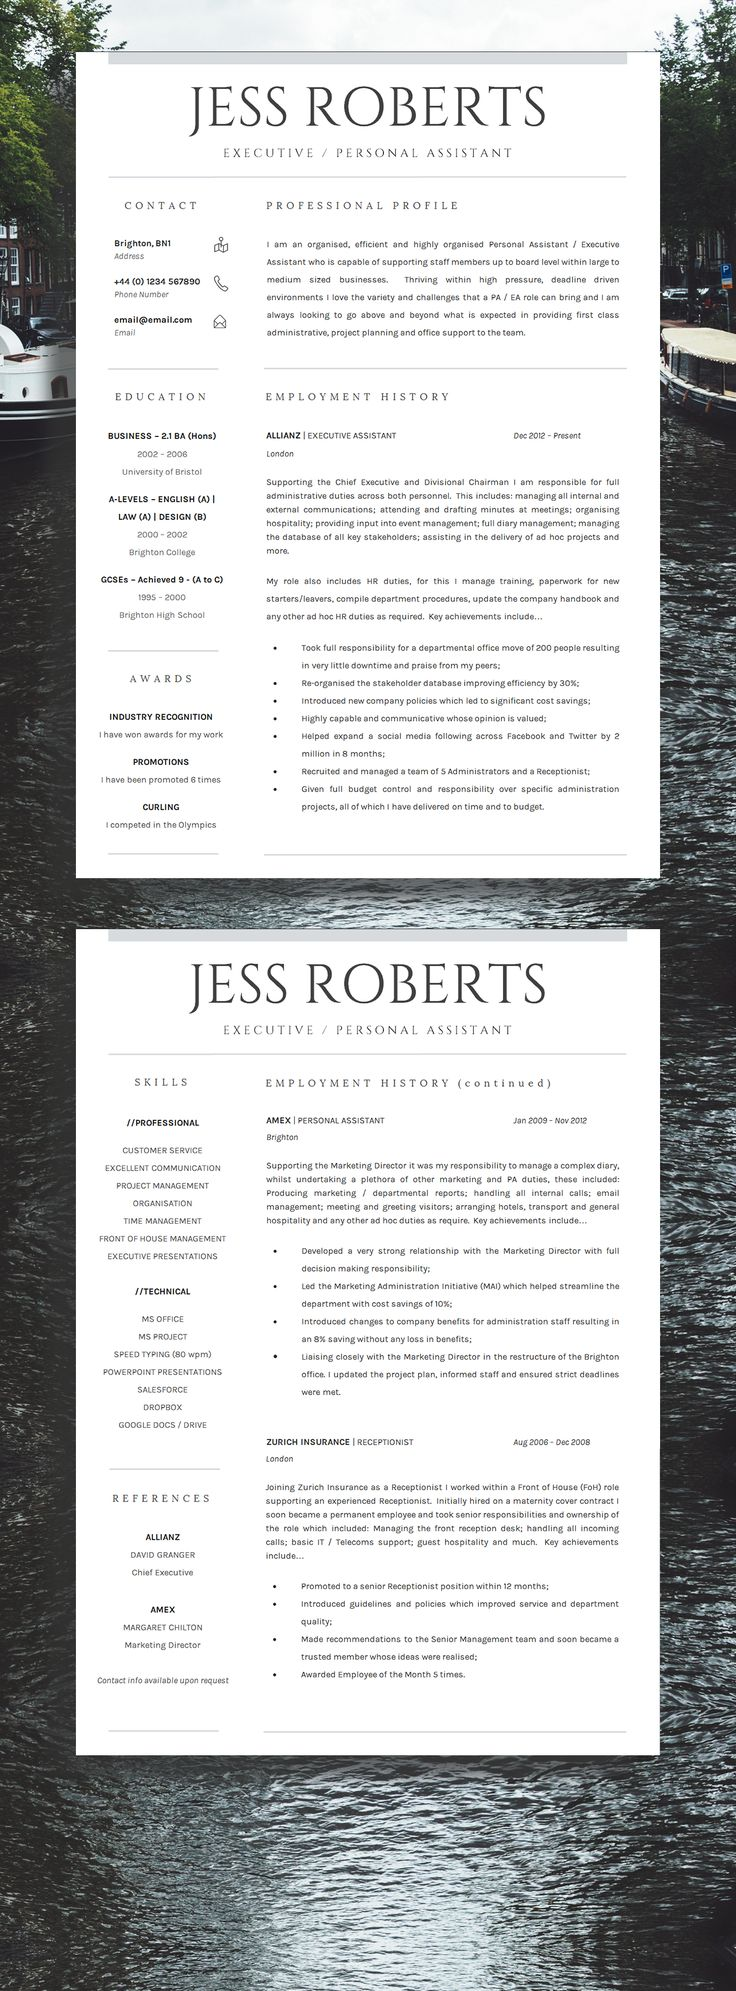 59 best CV images on Pinterest | Resume templates, Cv template and ...